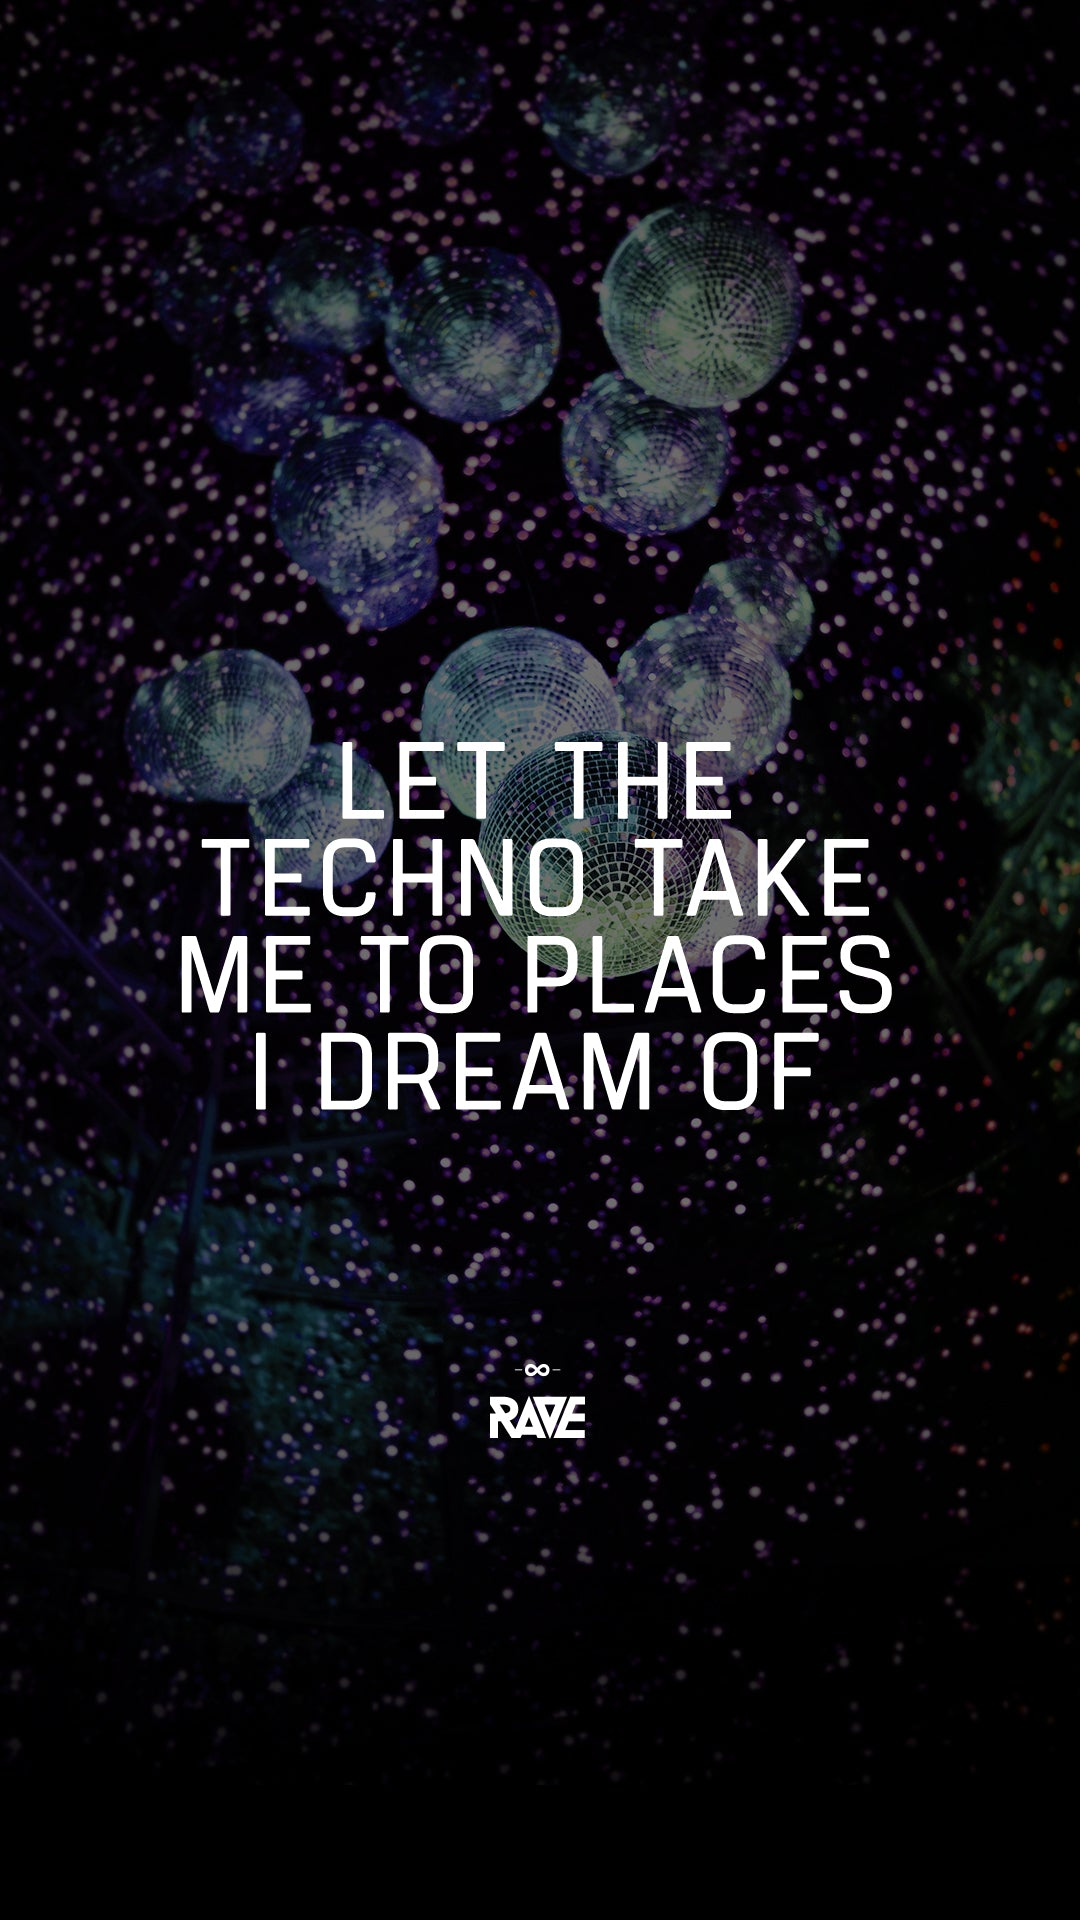 Let the Techno take me to places I dream of Wallpaper